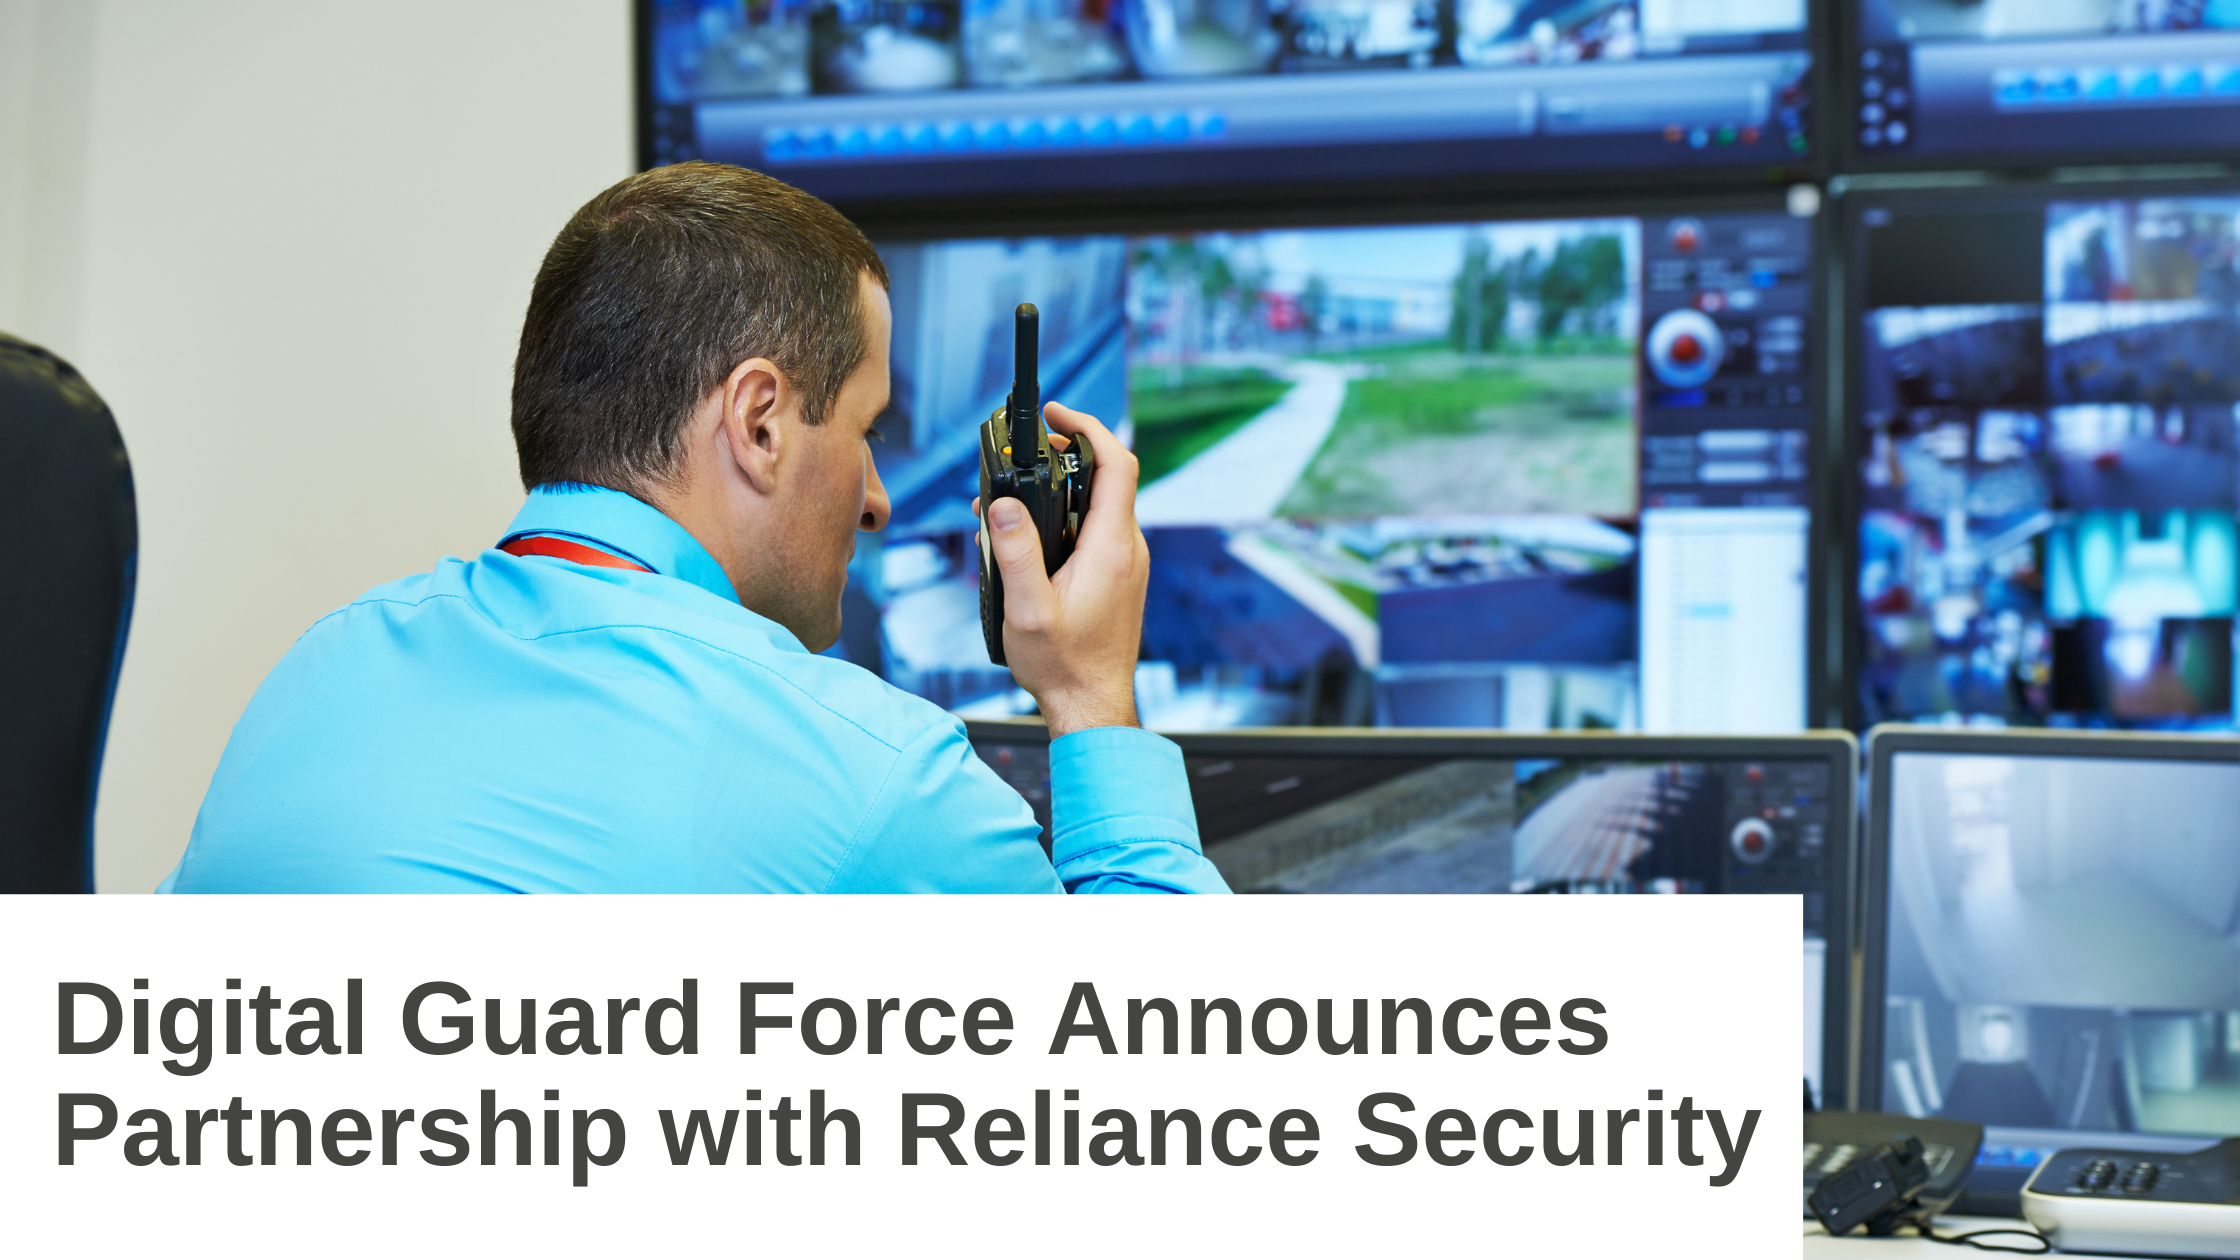 Digital Guard Force Announces Partnership with Reliance Security